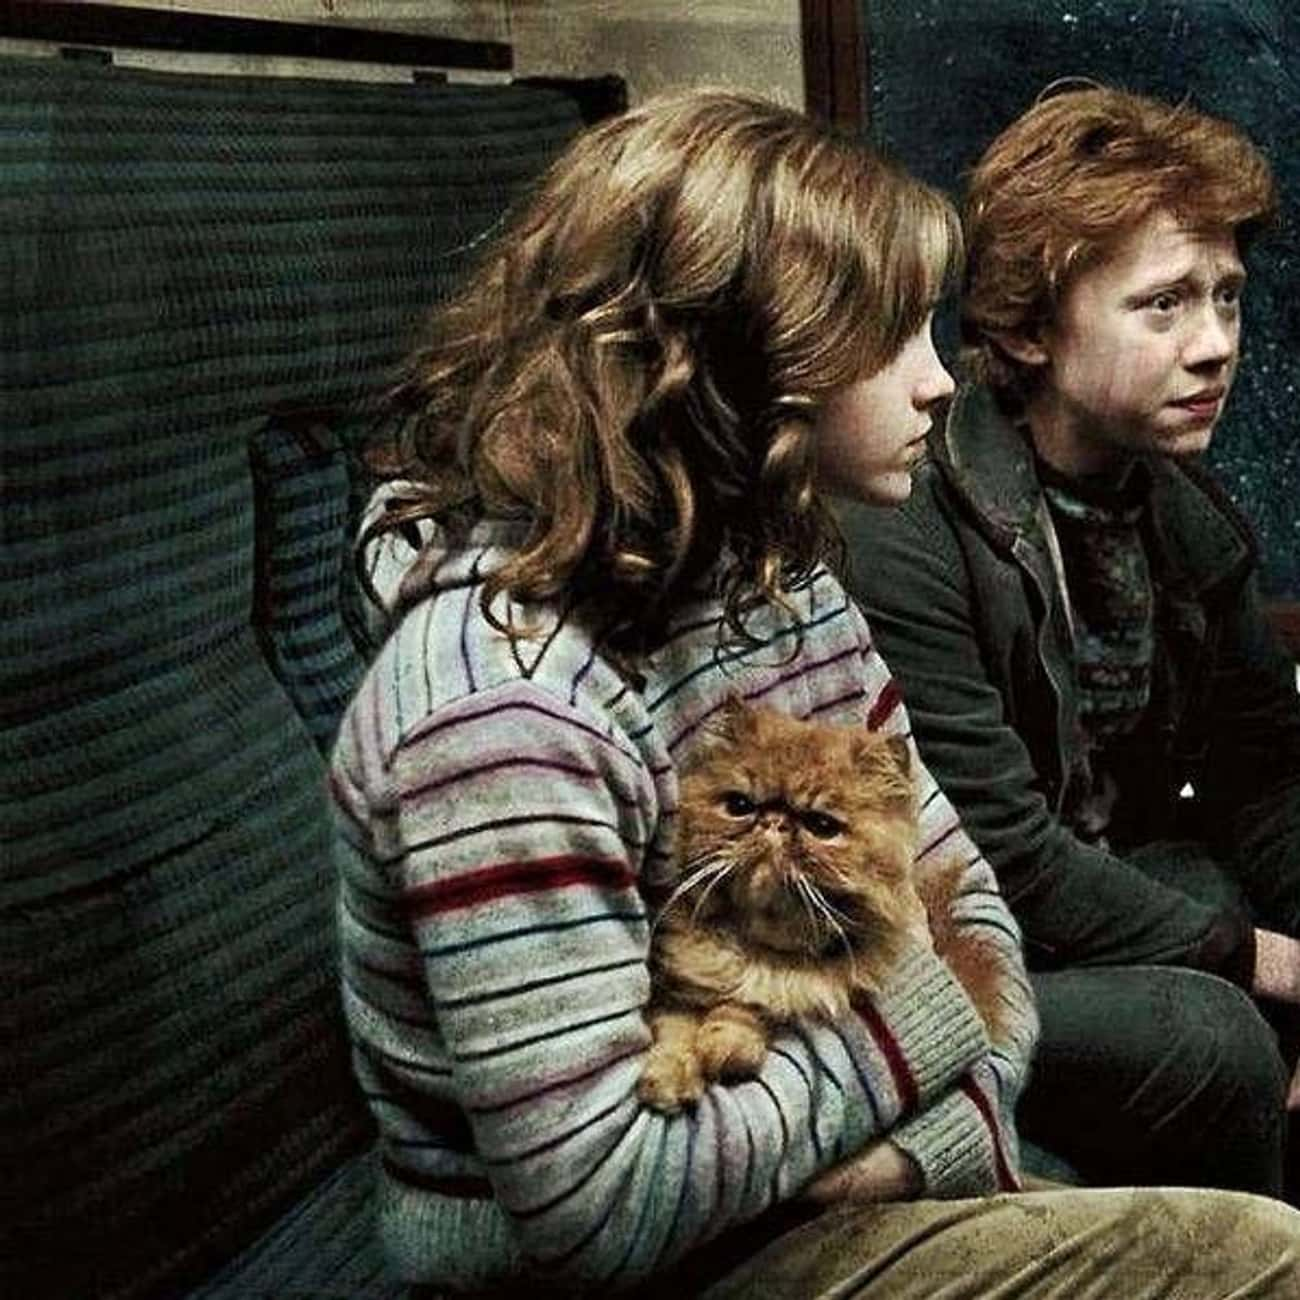 Crookshanks Used To Belong To  is listed (or ranked) 4 on the list The Craziest Harry Potter Fan Theories That Could Be True